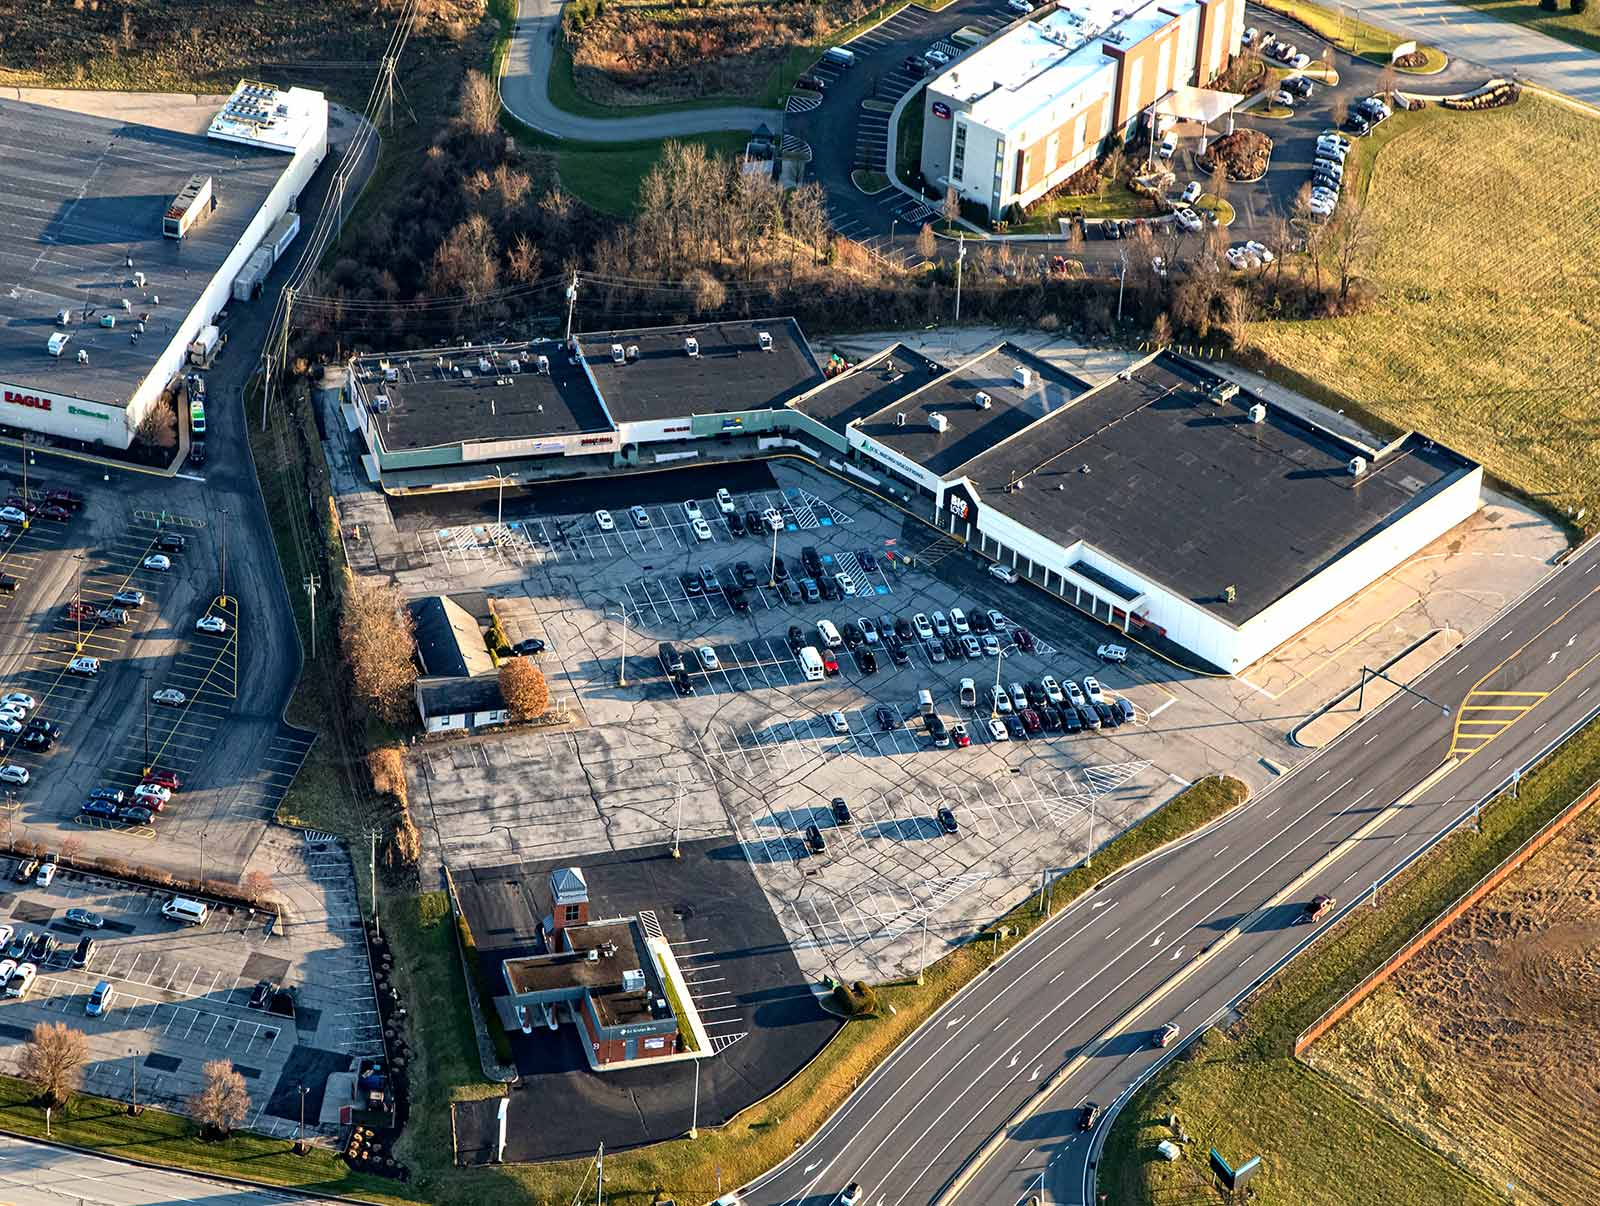 Aerial view of large shopping center plaza.